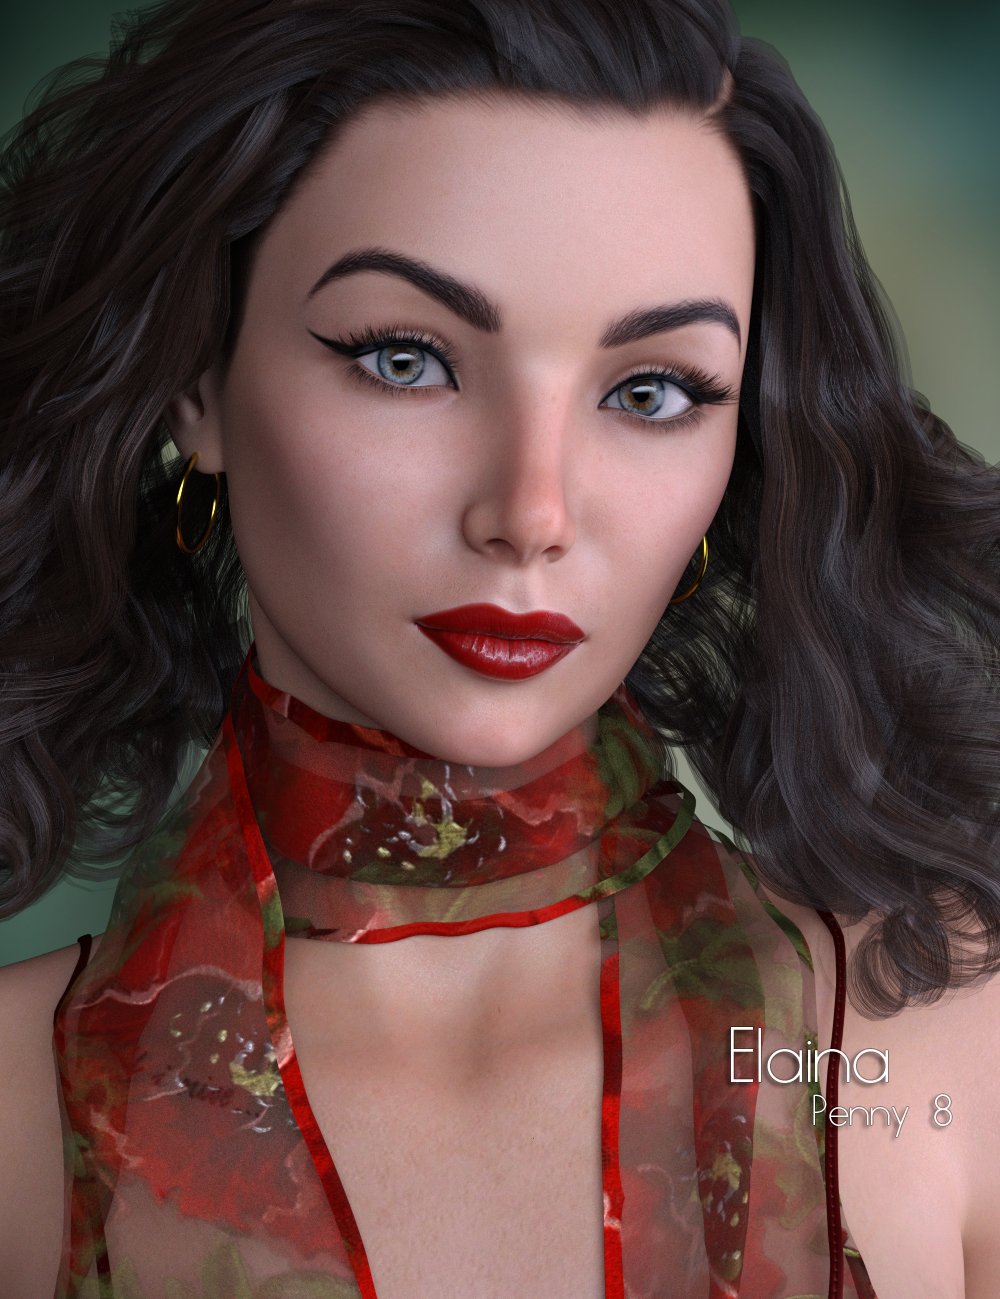 P3D Elaina for Penny 8 by: P3Design, 3D Models by Daz 3D